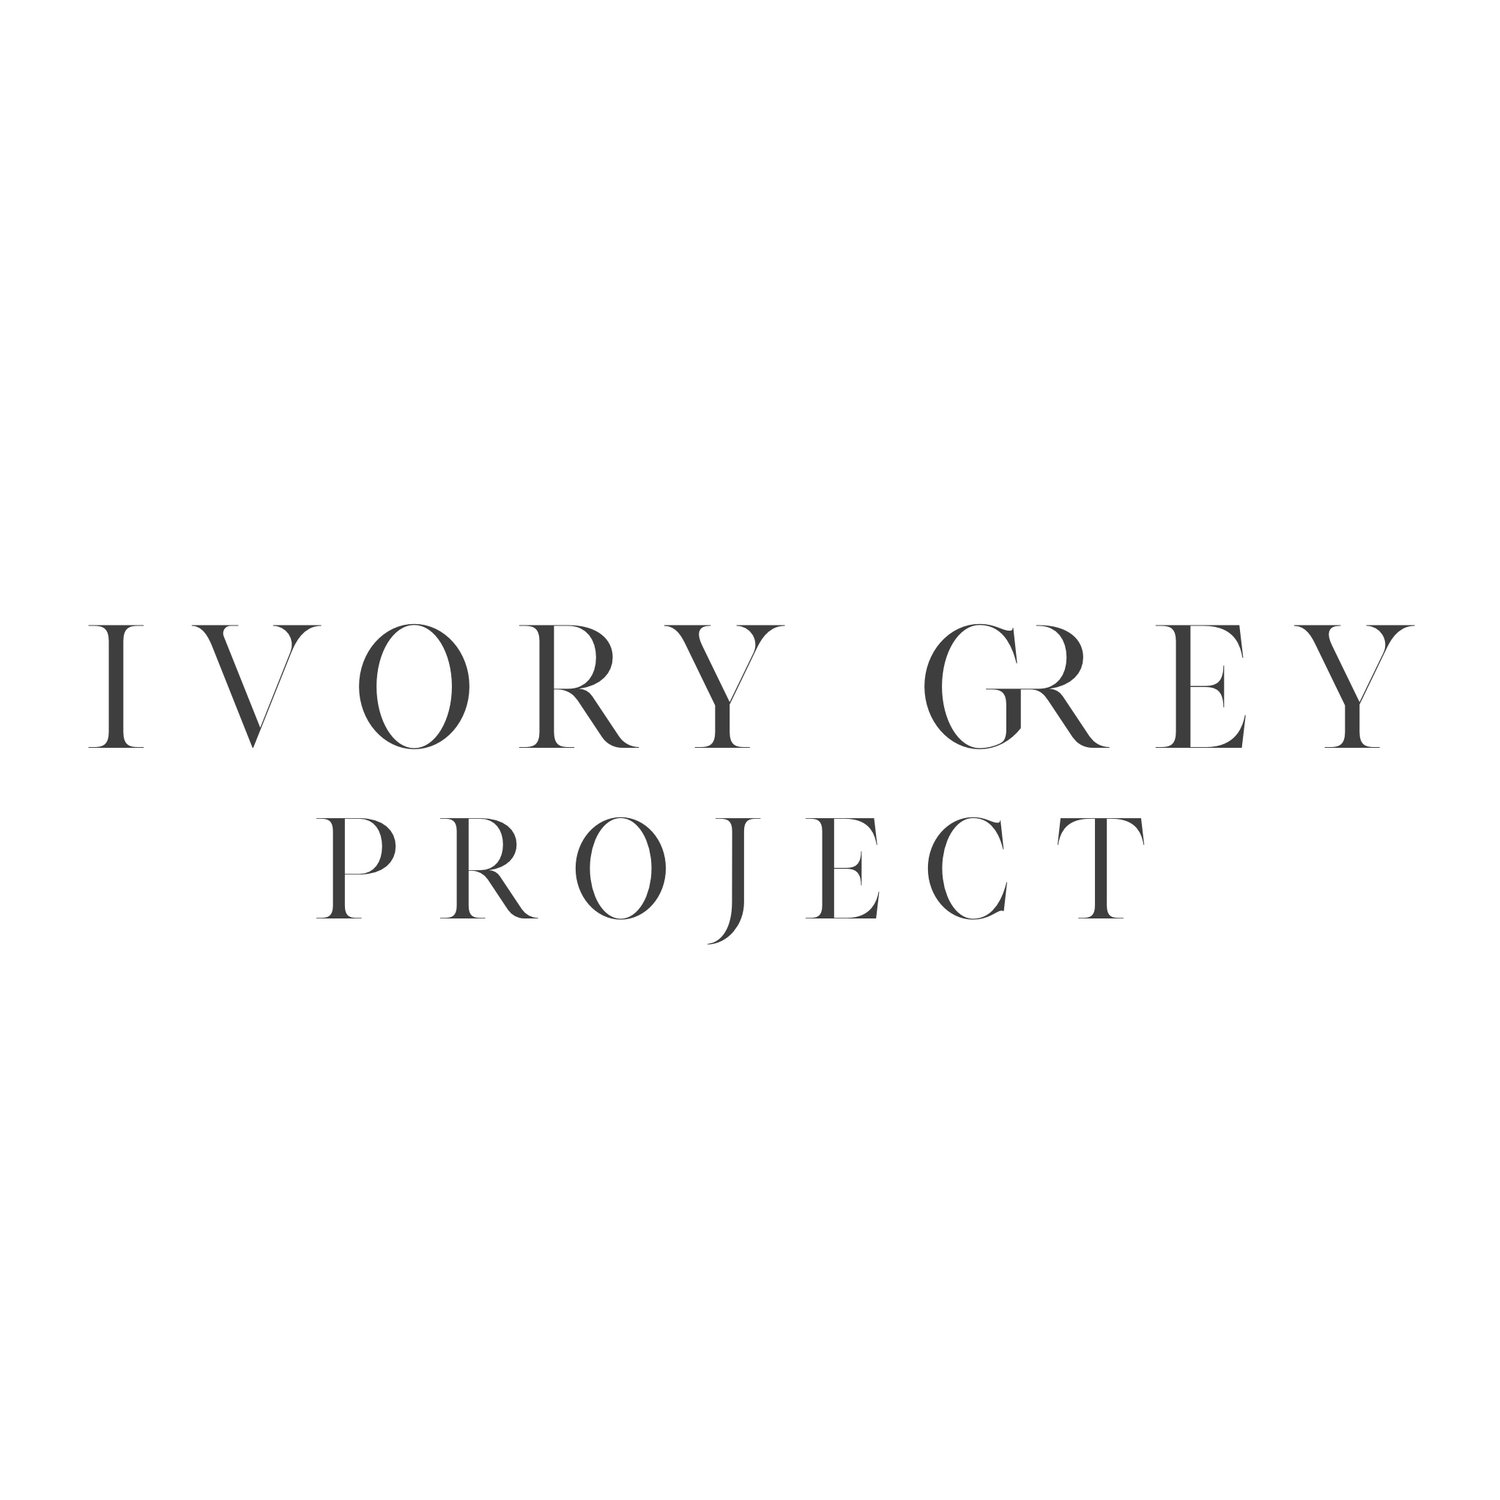 THE IVORY GREY PROJECT